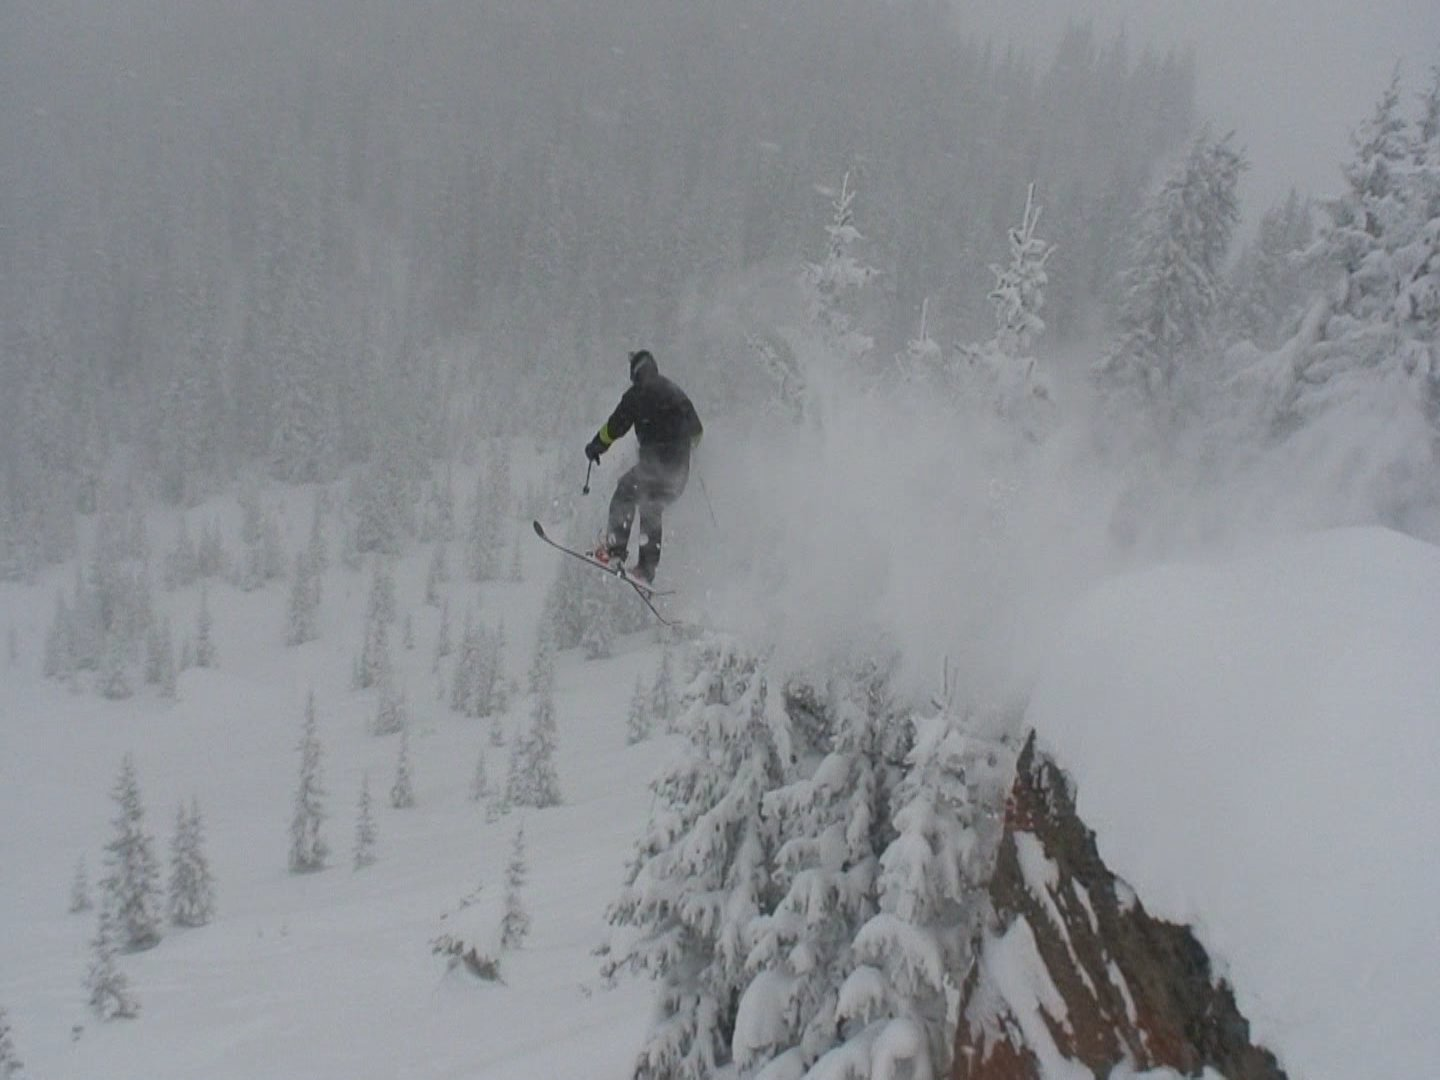 Going huge at vail